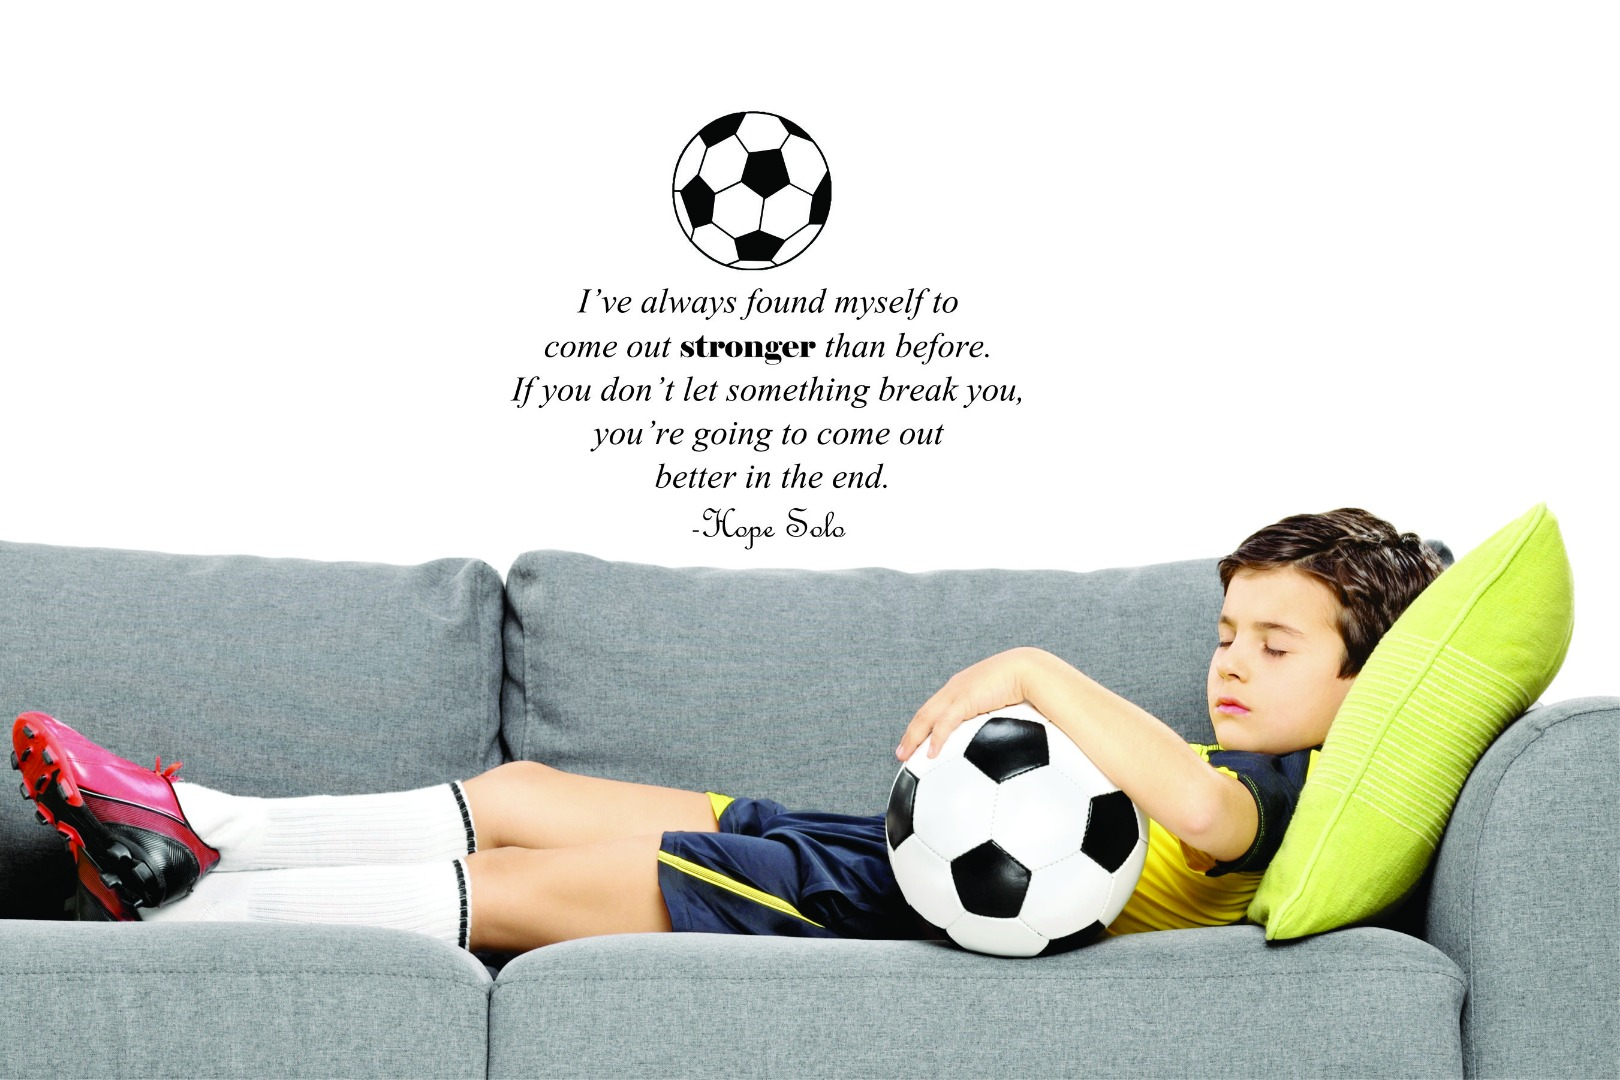 Custom Decals Don't Let Something Break You, Your Going To Come Out Better Hope Solo Quote Soccer... by Design With Vinyl